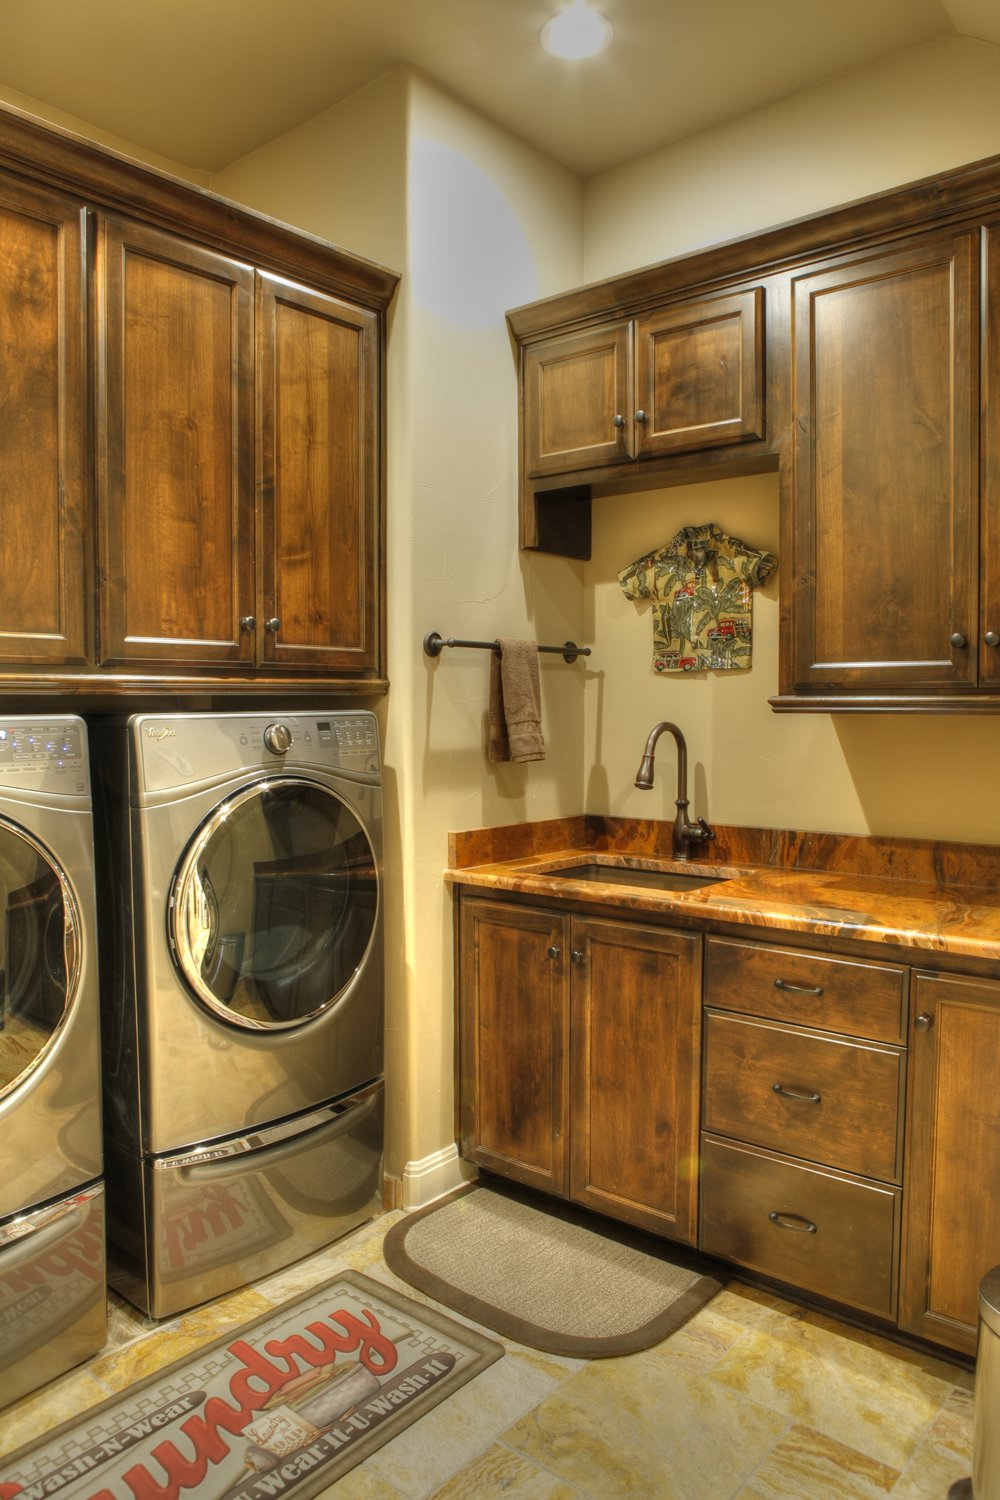 16-laundry room 1-hdr.jpg